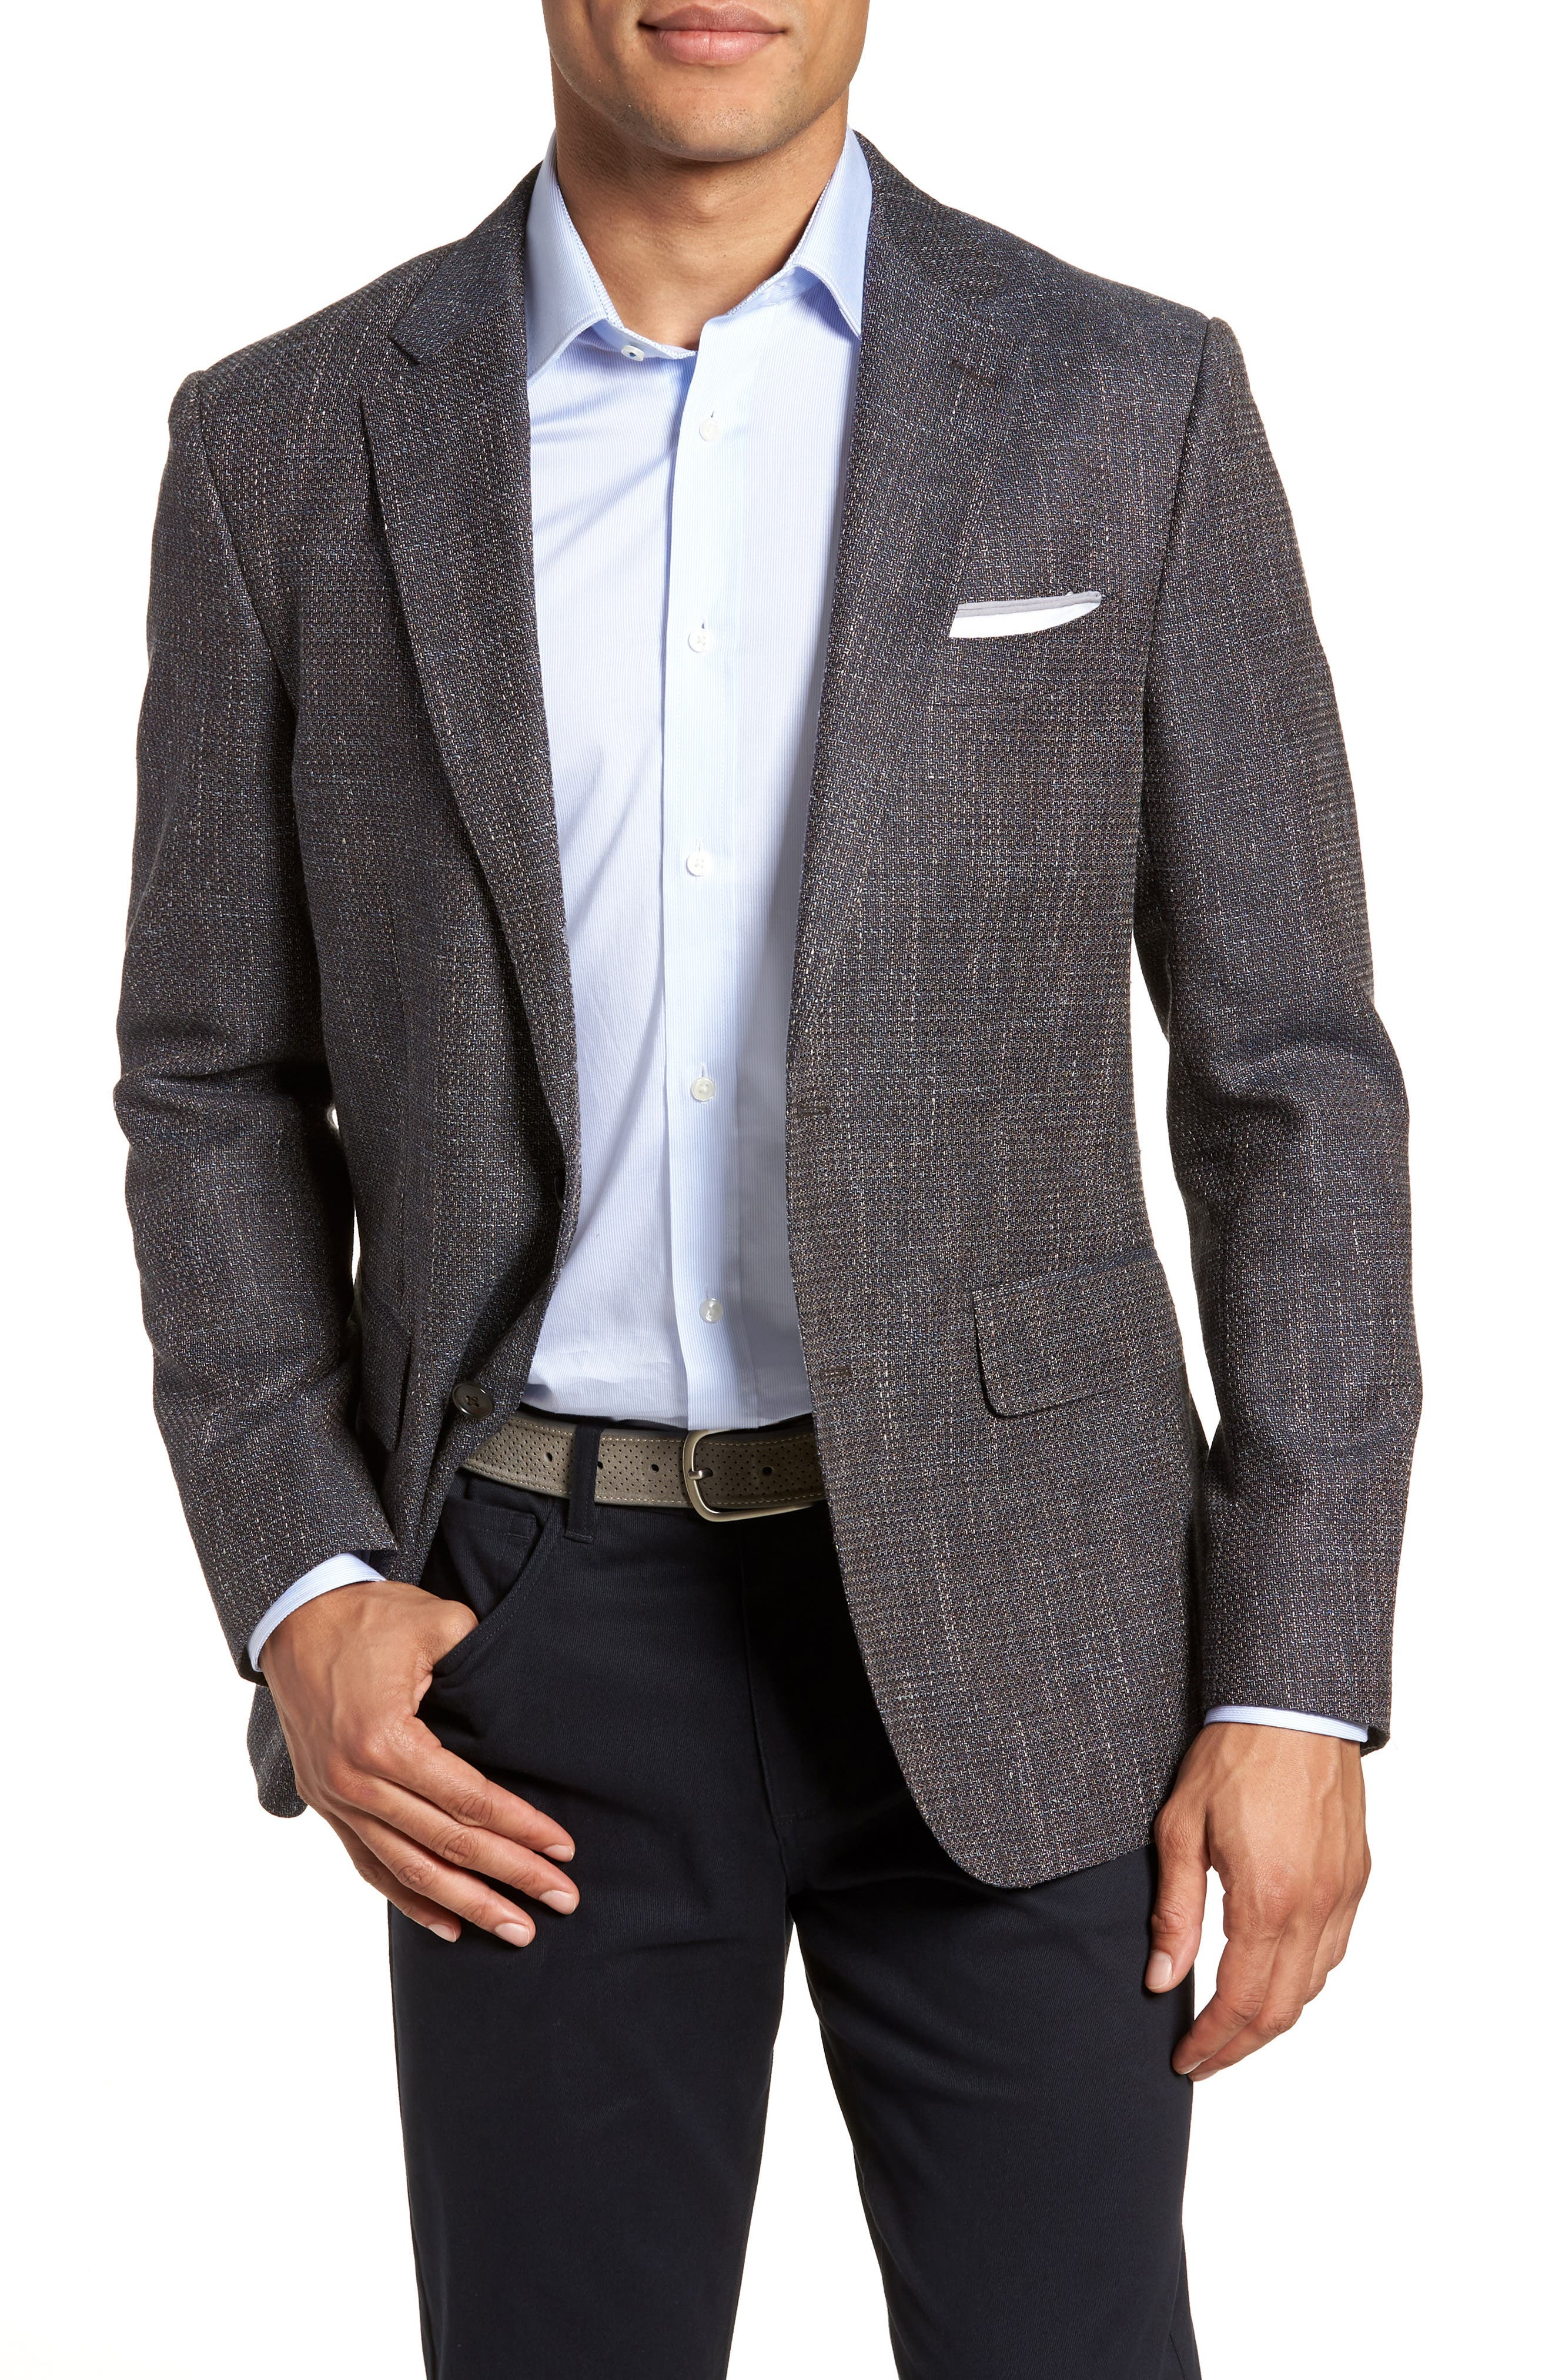 RODD AND GUNN Five Bridges Regular Fit Jacket at Nordstrom Rack